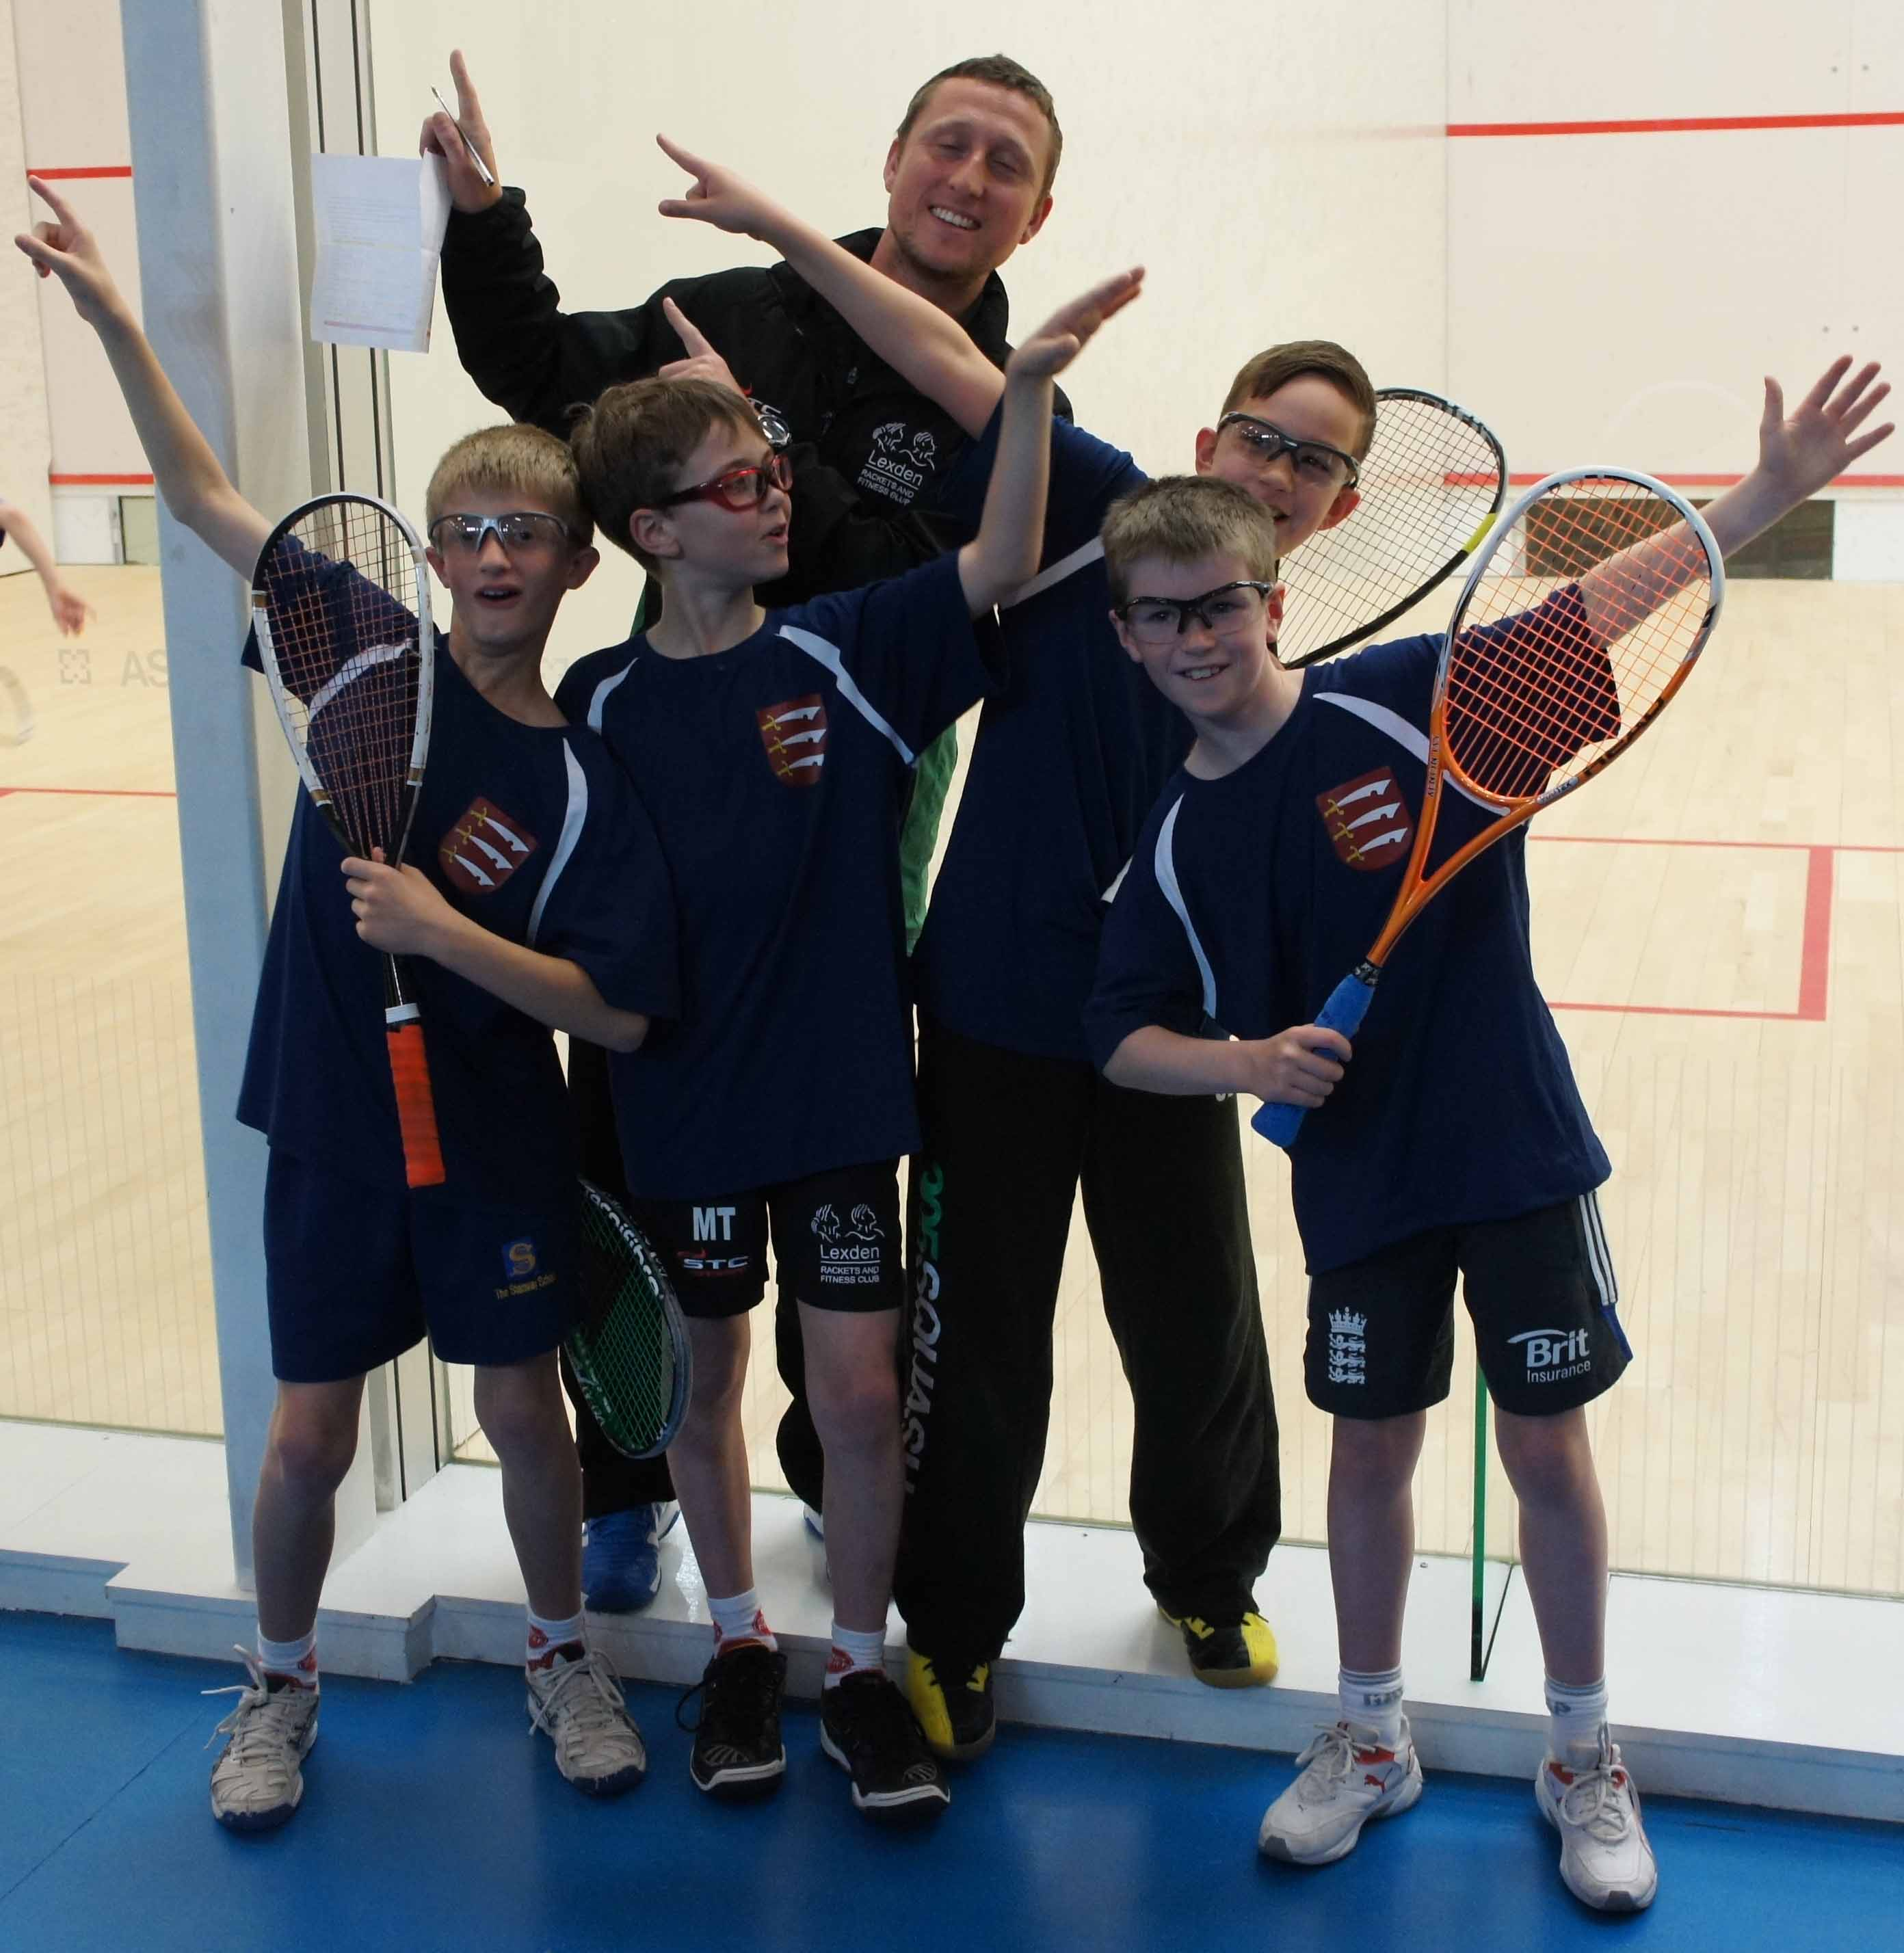 LEXDEN'S FAB 4 finish second at England U-11 Festival